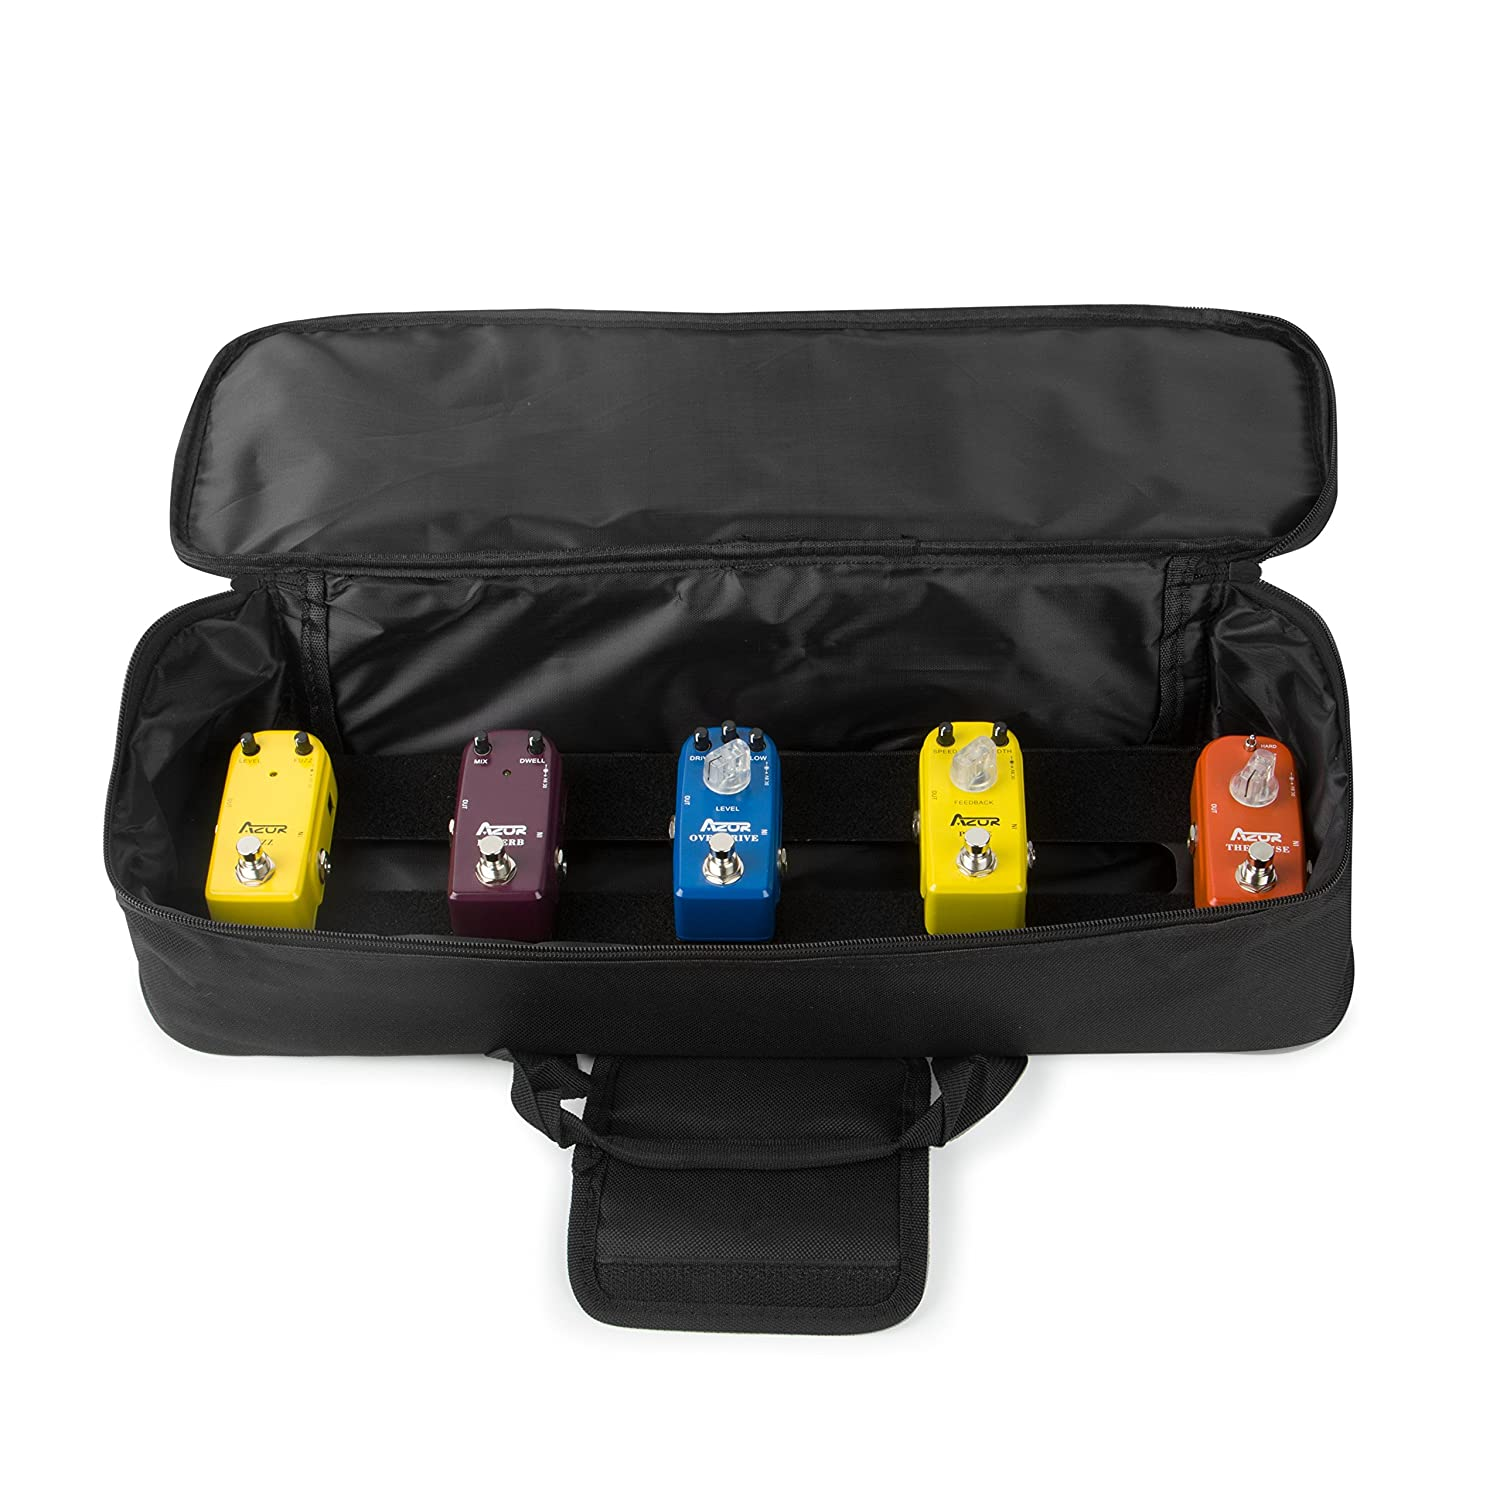 6bd1453b2600 Amazon.com: LAPOND Guitar Pedal board Small with Carry Bag, Guitar ...